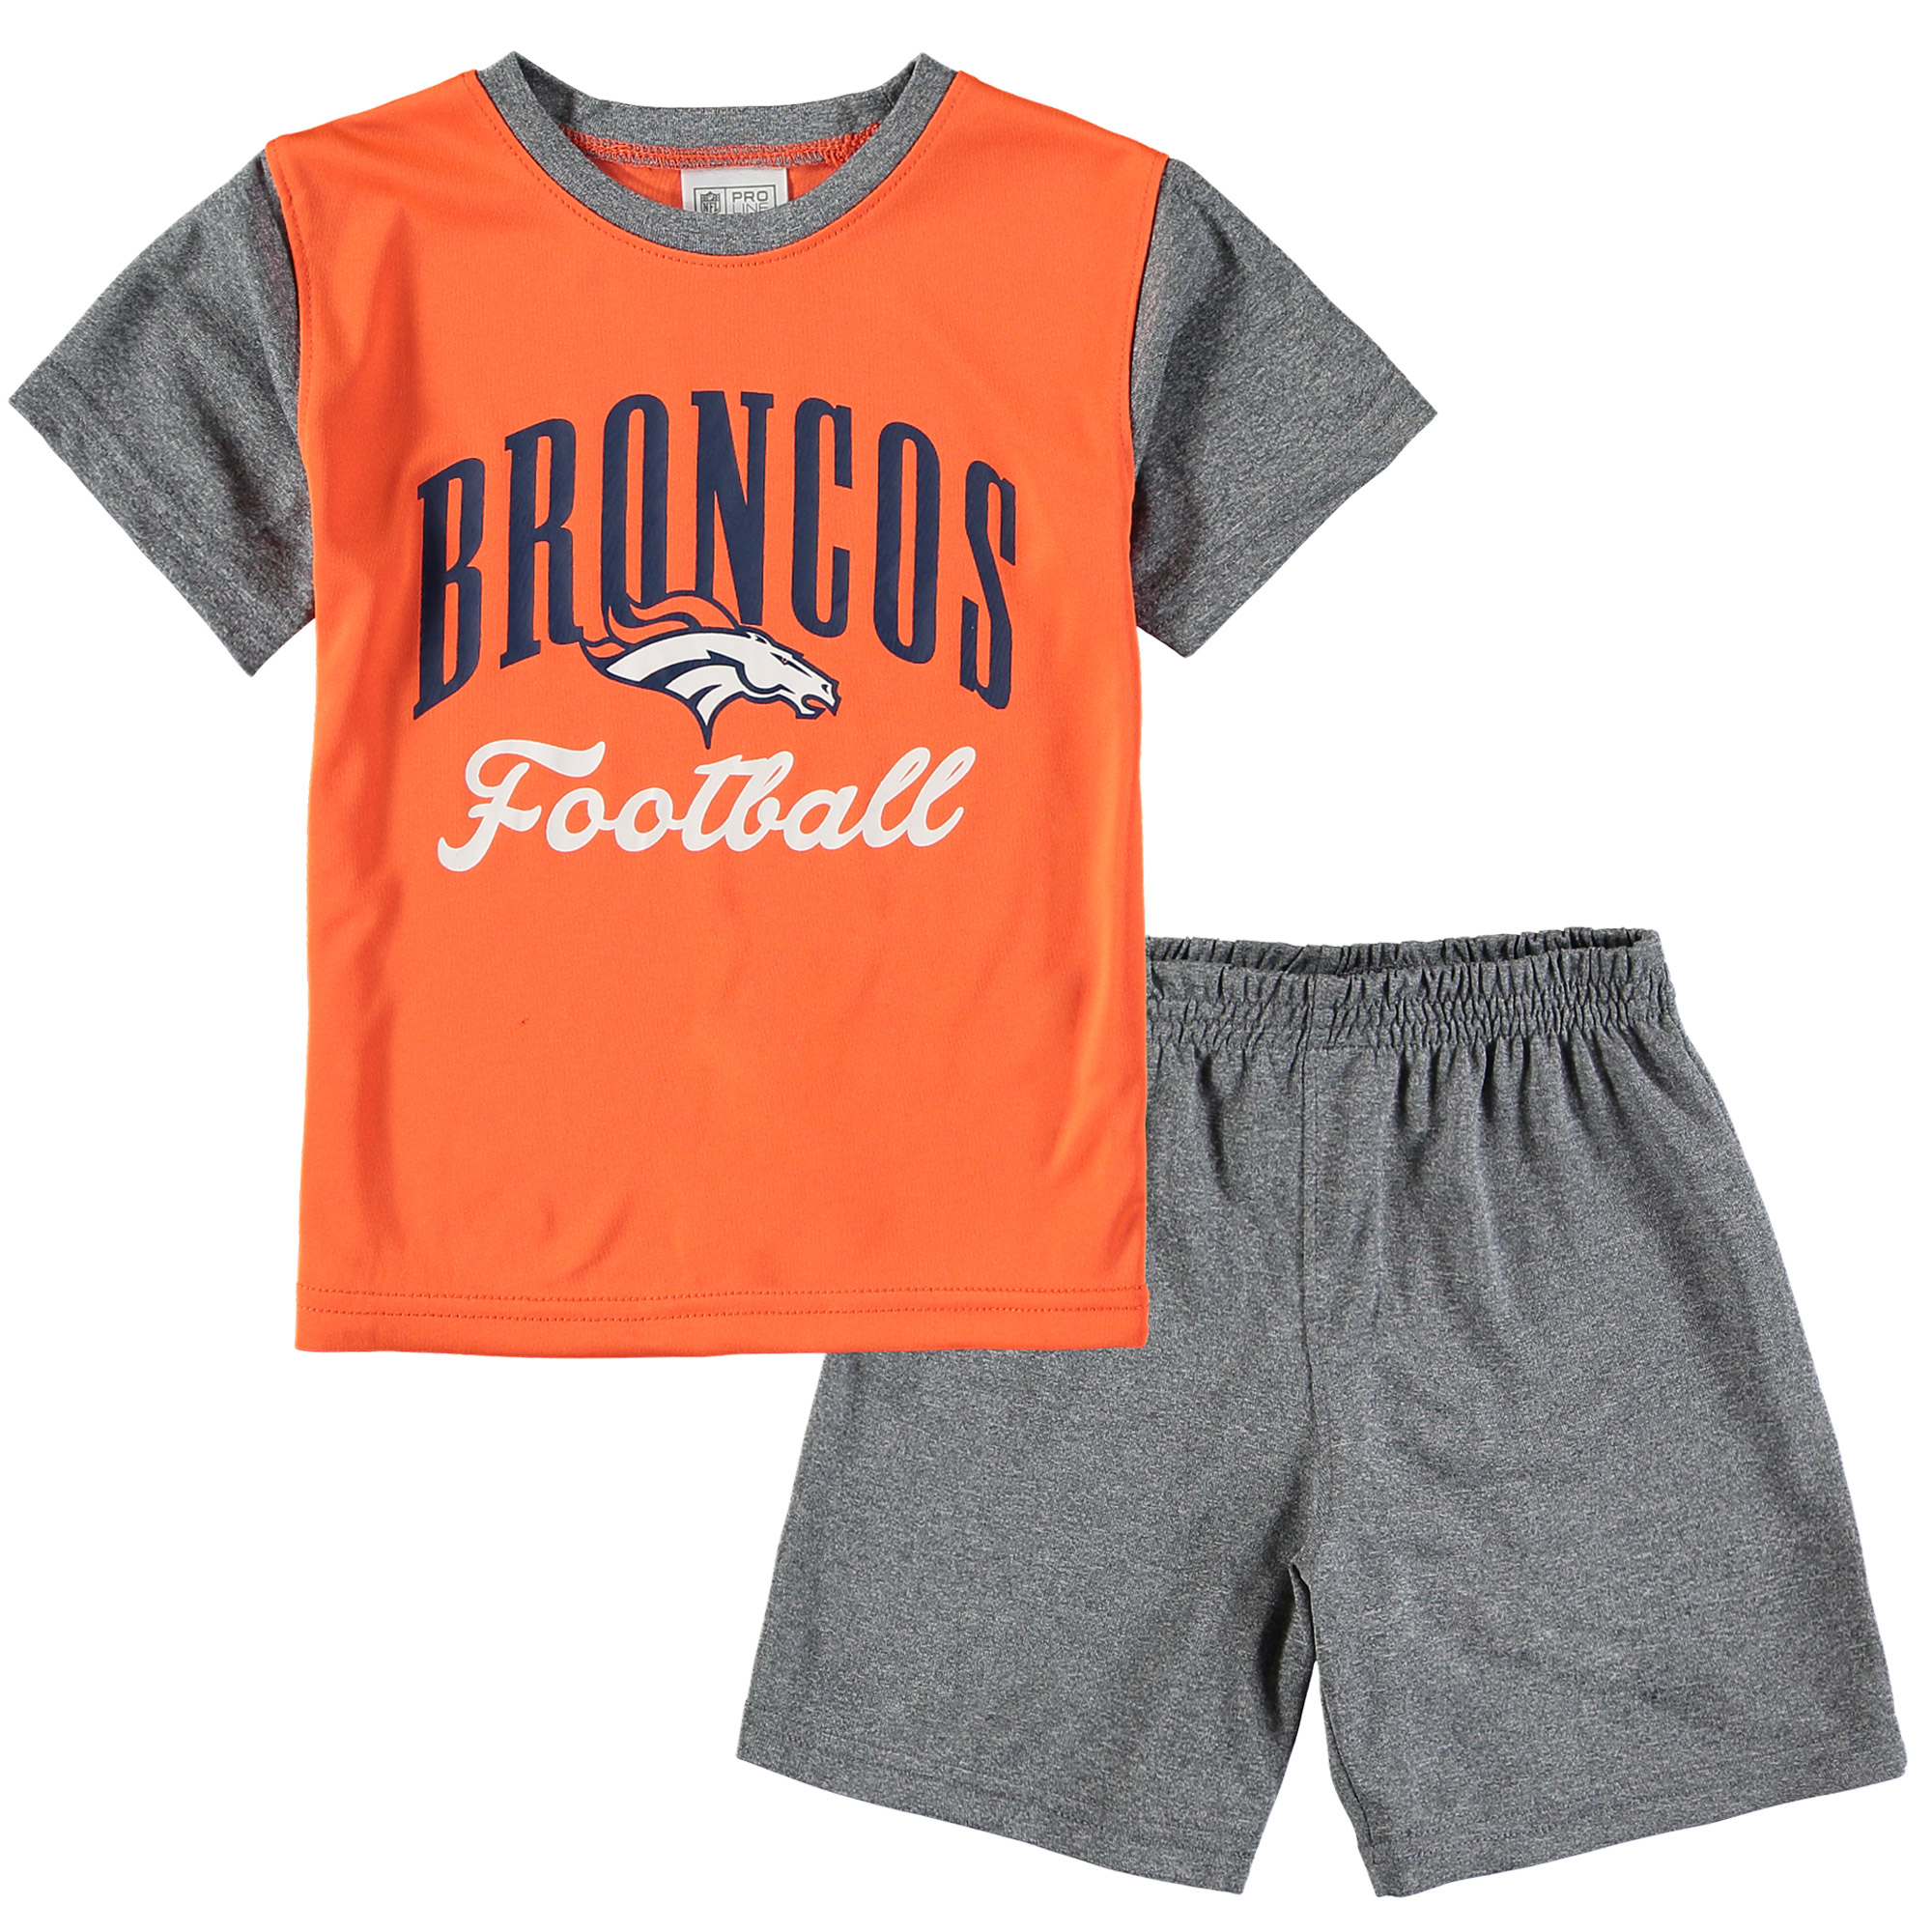 Denver Broncos NFL Pro Line by Fanatics Branded Toddler Two-Piece Victory Script T-Shirt and Short Set - Orange/Heathered Gray